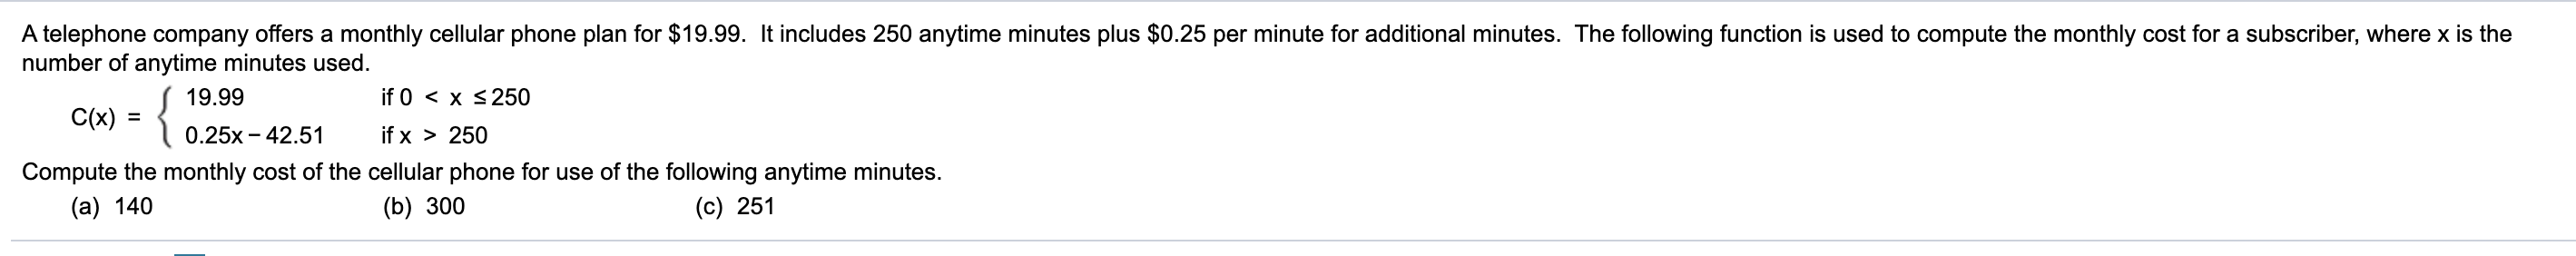 A telephone company offers a monthly cellular phone plan for $19.99. It includes 250 anytime minutes plus $0.25 per minute for additional minutes. The following function is used to compute the monthly cost for a subscriber, where x is the number of anytime minutes used. { 19.99 if 0 < x <250 C(x) = %3D 0.25x - 42.51 if x > 250 Compute the monthly cost of the cellular phone for use of the following anytime minutes. (c) 251 (a) 140 (b) 300